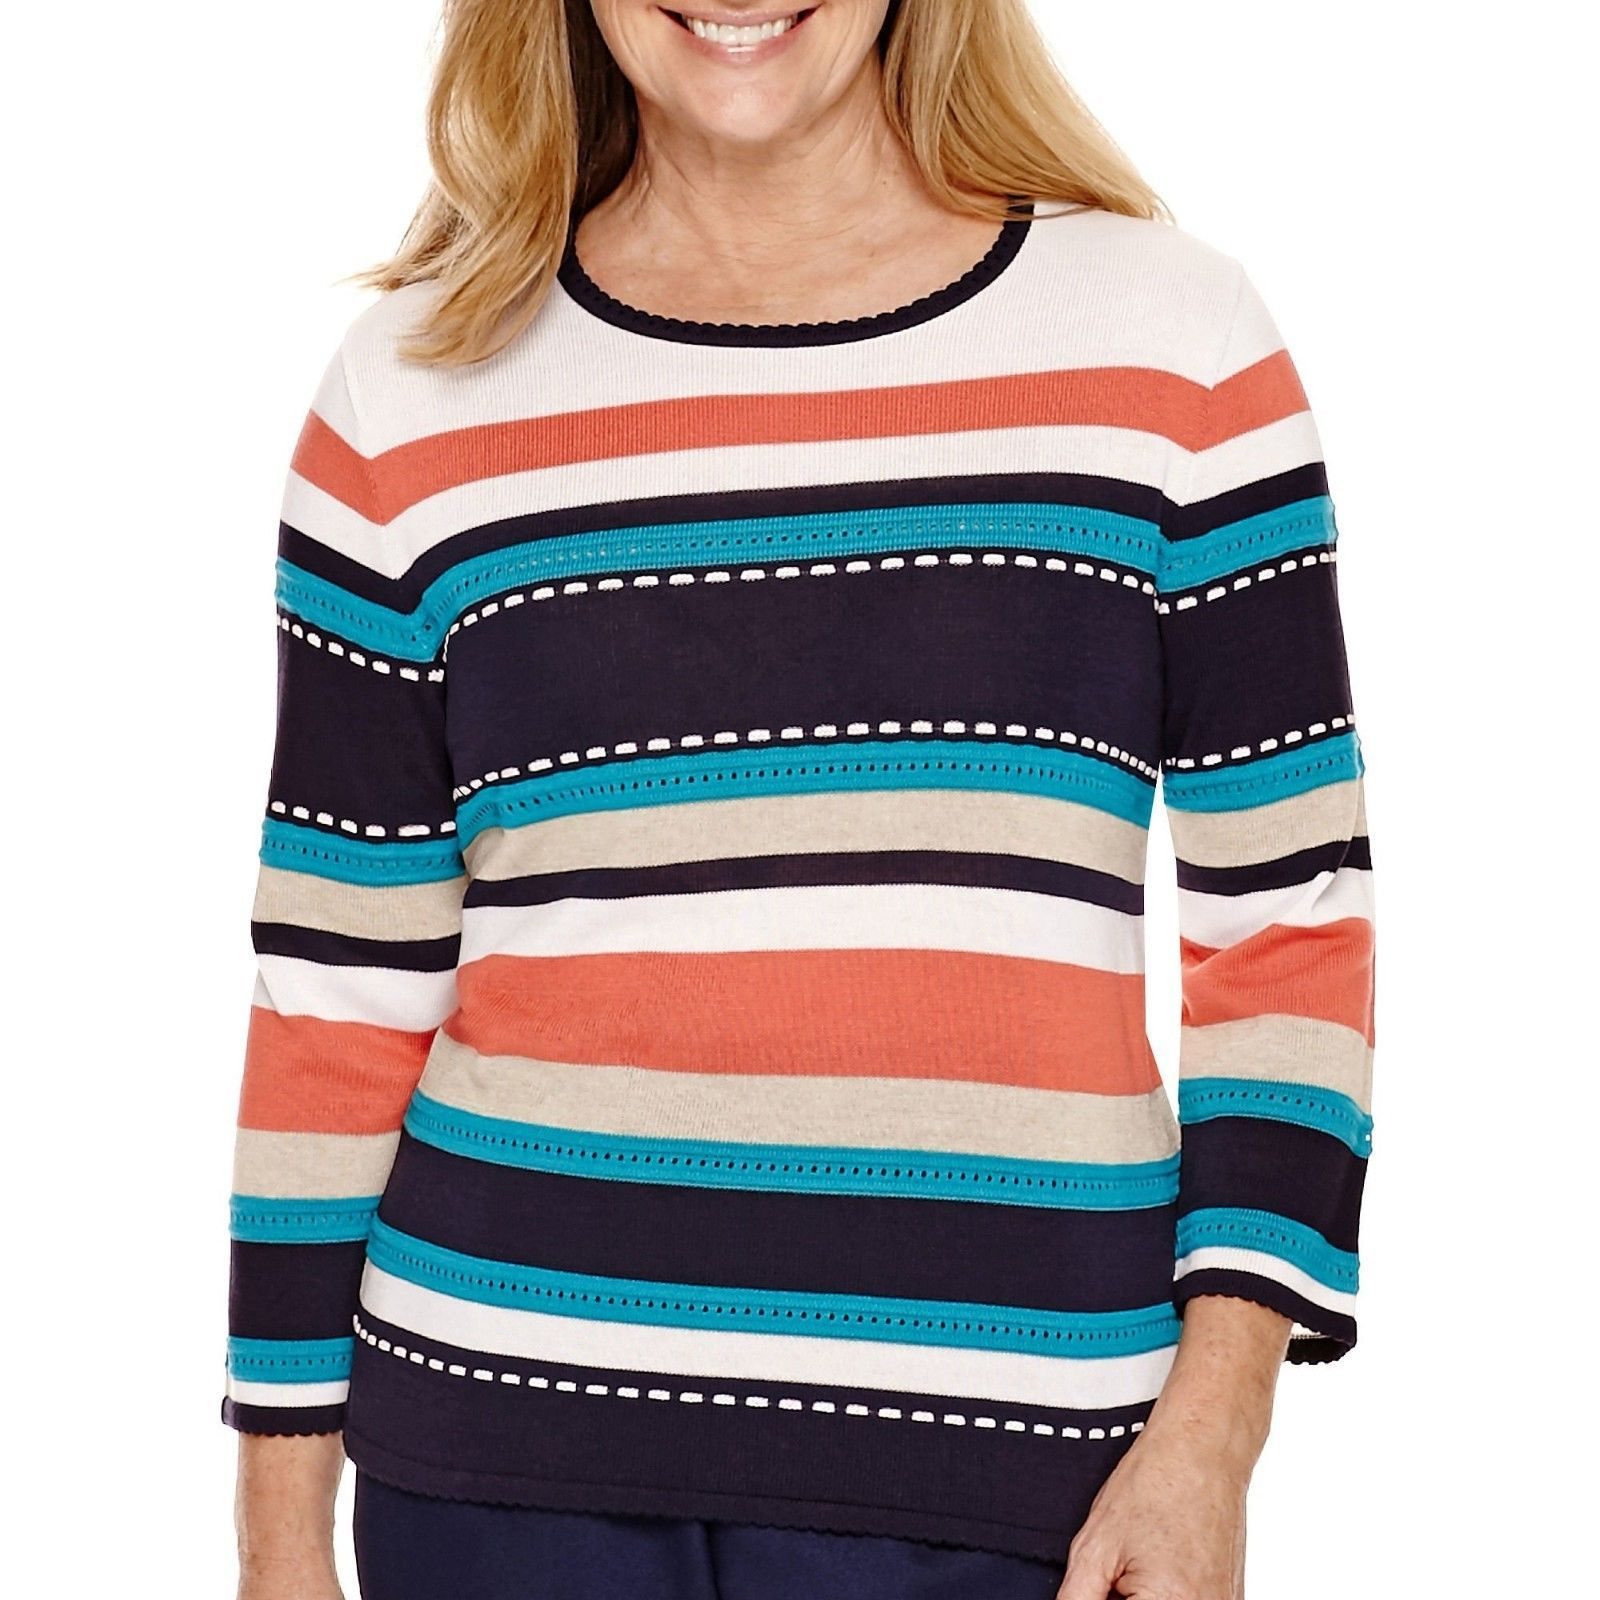 Primary image for Alfred Dunner 3/4-Sleeve Striped Sweater Size L, XL Msrp $54.00 New